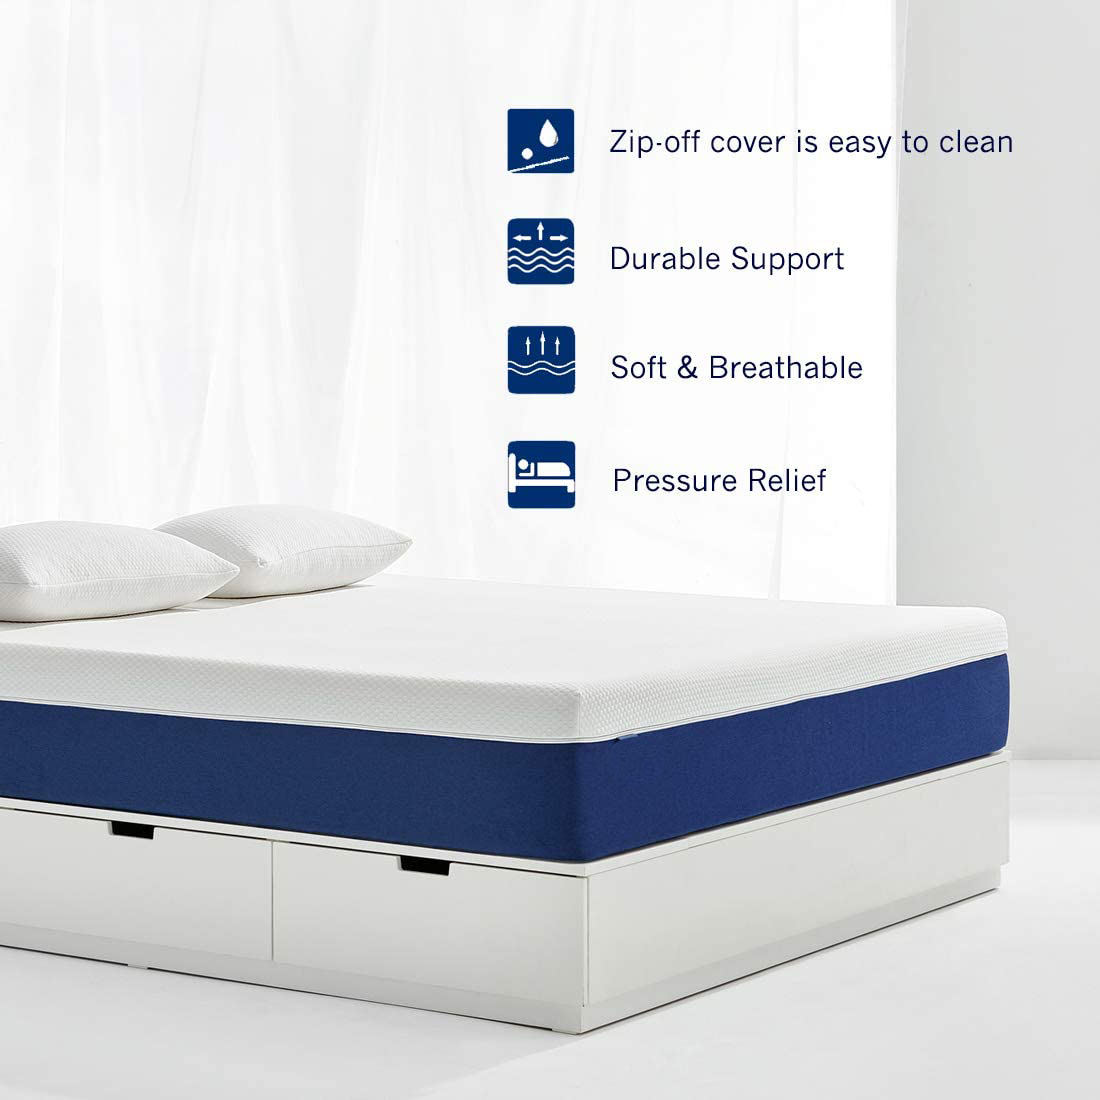 Removable Zipper Cover bamboo fabric double bed king size gel memory foam mattress for sleeping